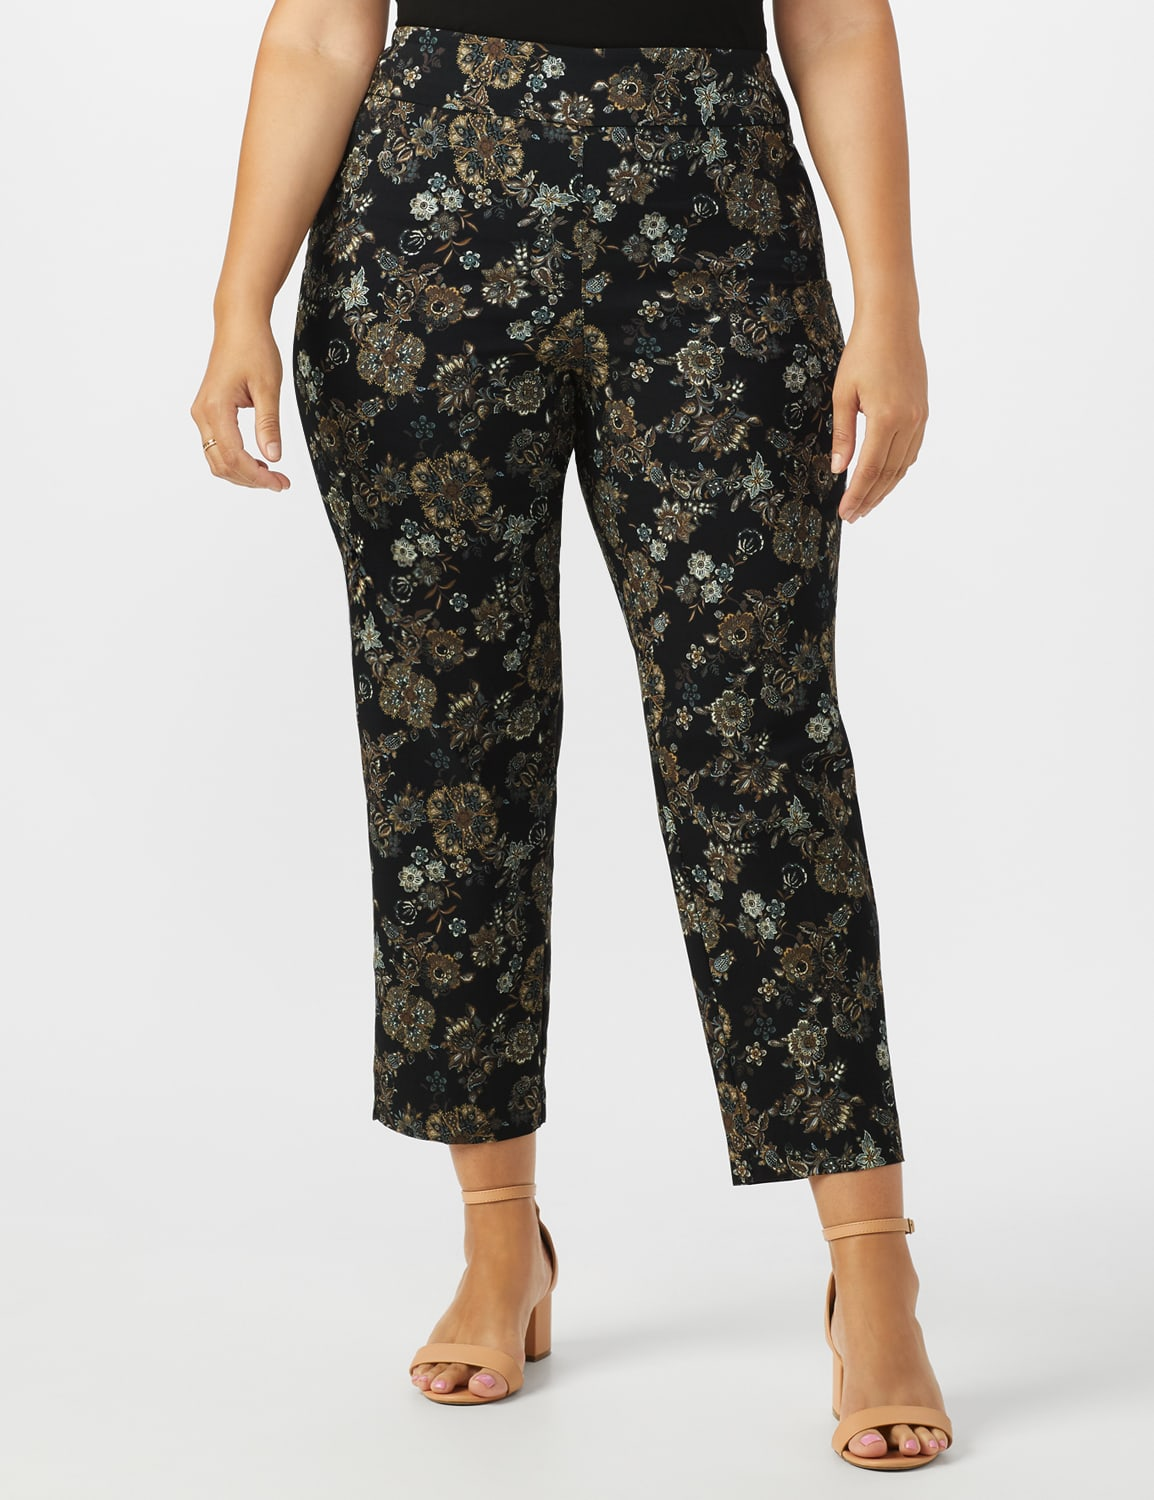 Plus  Roz & Ali Printed Superstretch Pull On Ankle Pant With Slits - Black/Grey - Front